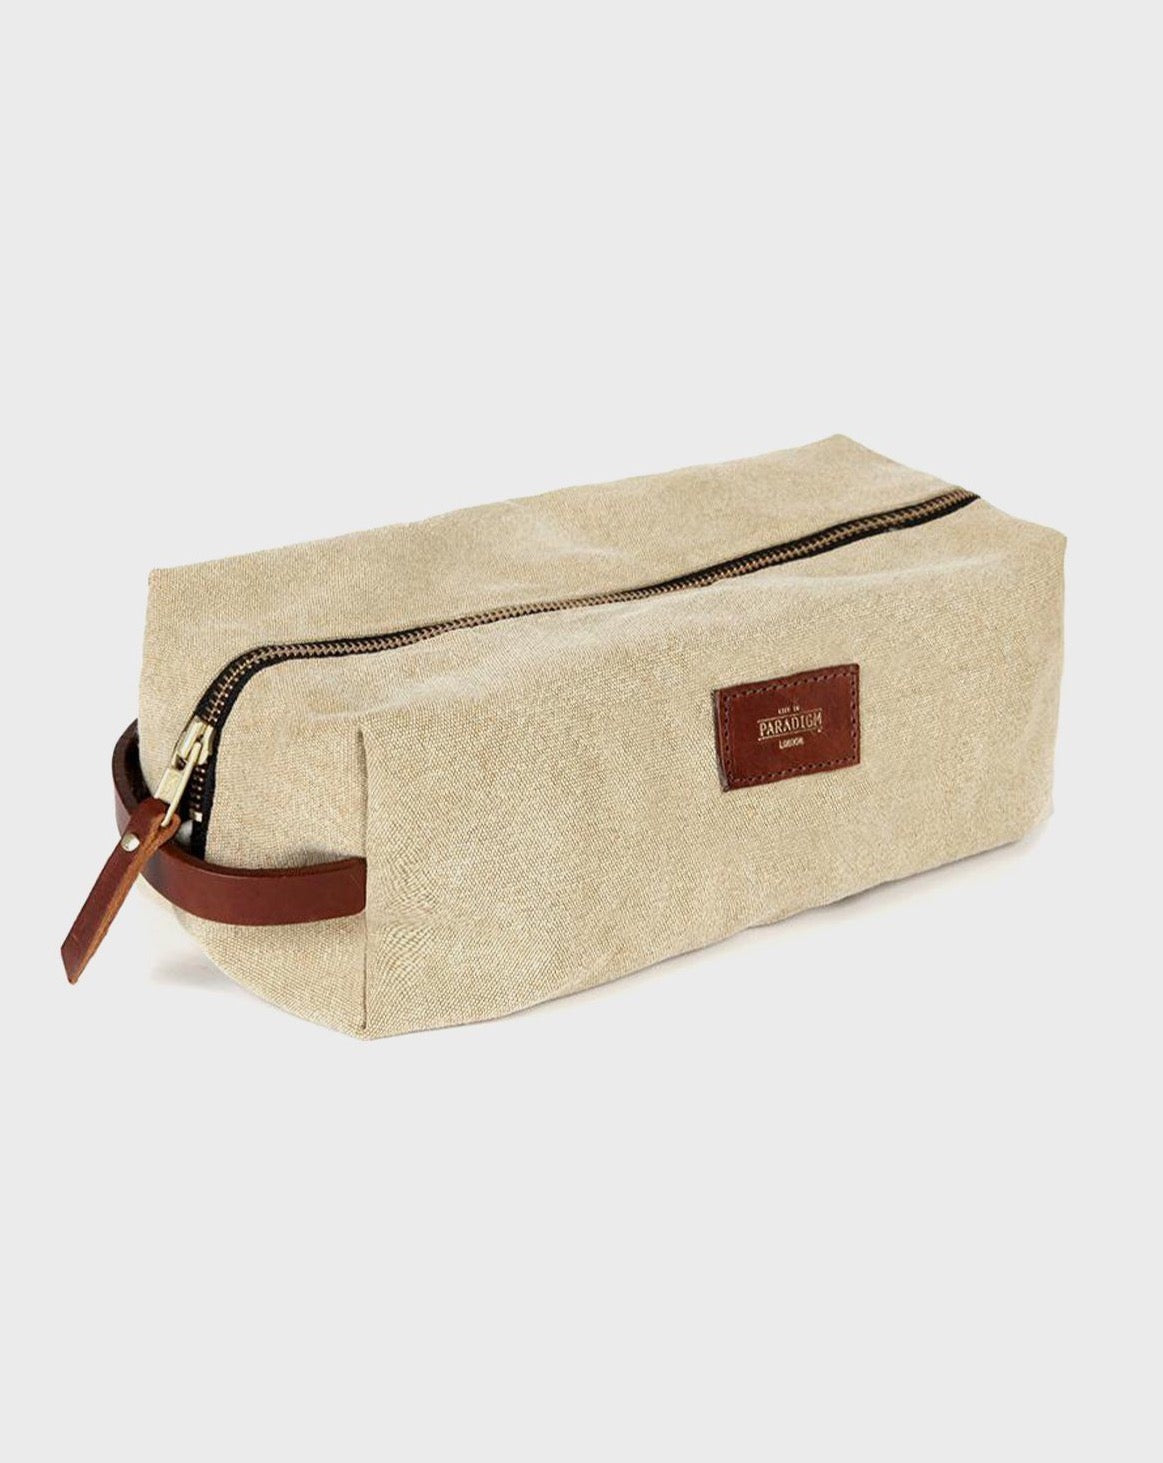 Montague Beige Travel Wash Bag - Life in Paradigm Menswear London